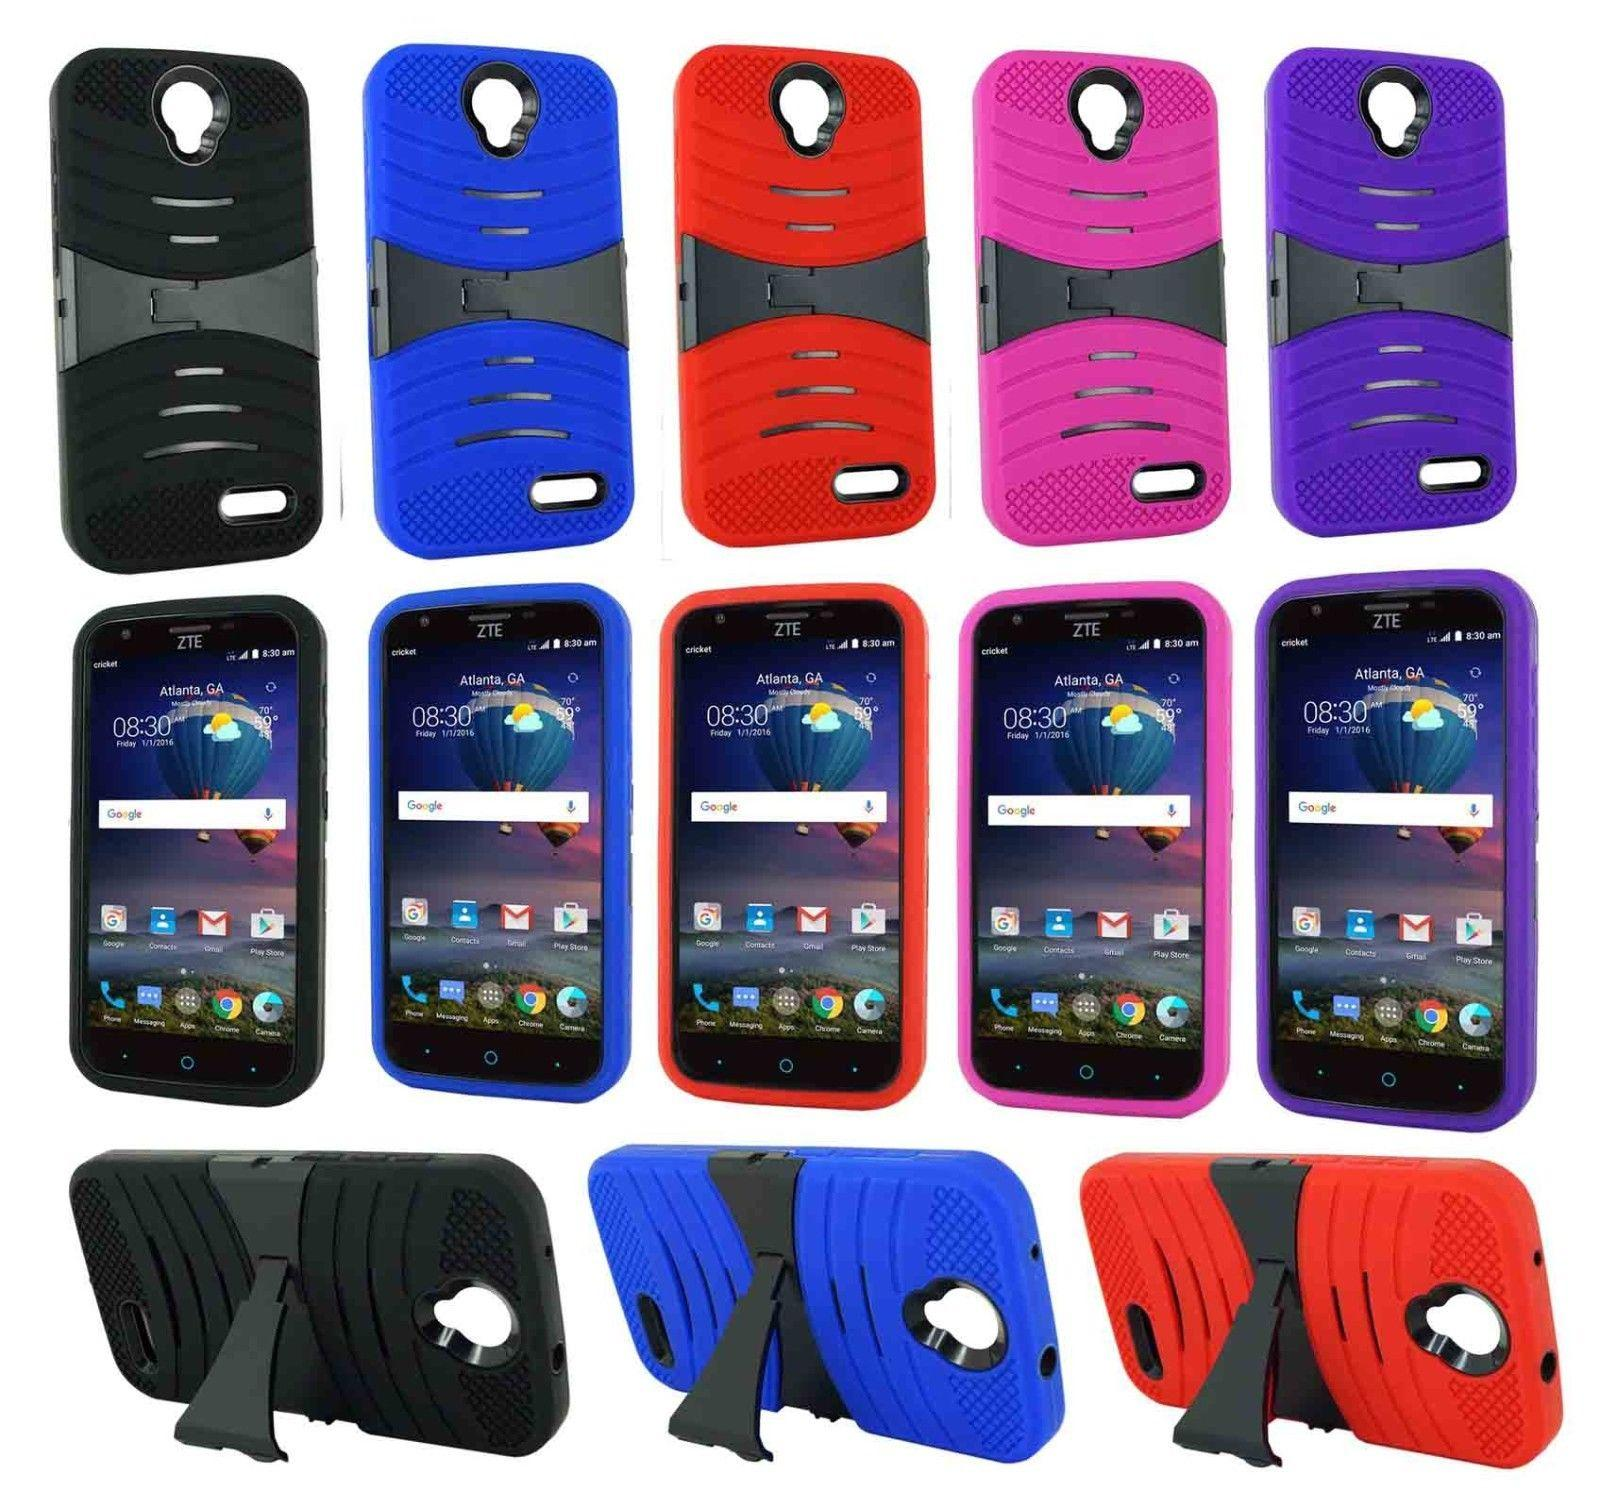 newest 082a6 d4859 Hot Sale PC Silicone Soft Rugged Case Hybrid Kickstand Armor Cases Phone  Cover for ZTE Sonata 3 Z831 Z832 ZTE Grand X3 Z959